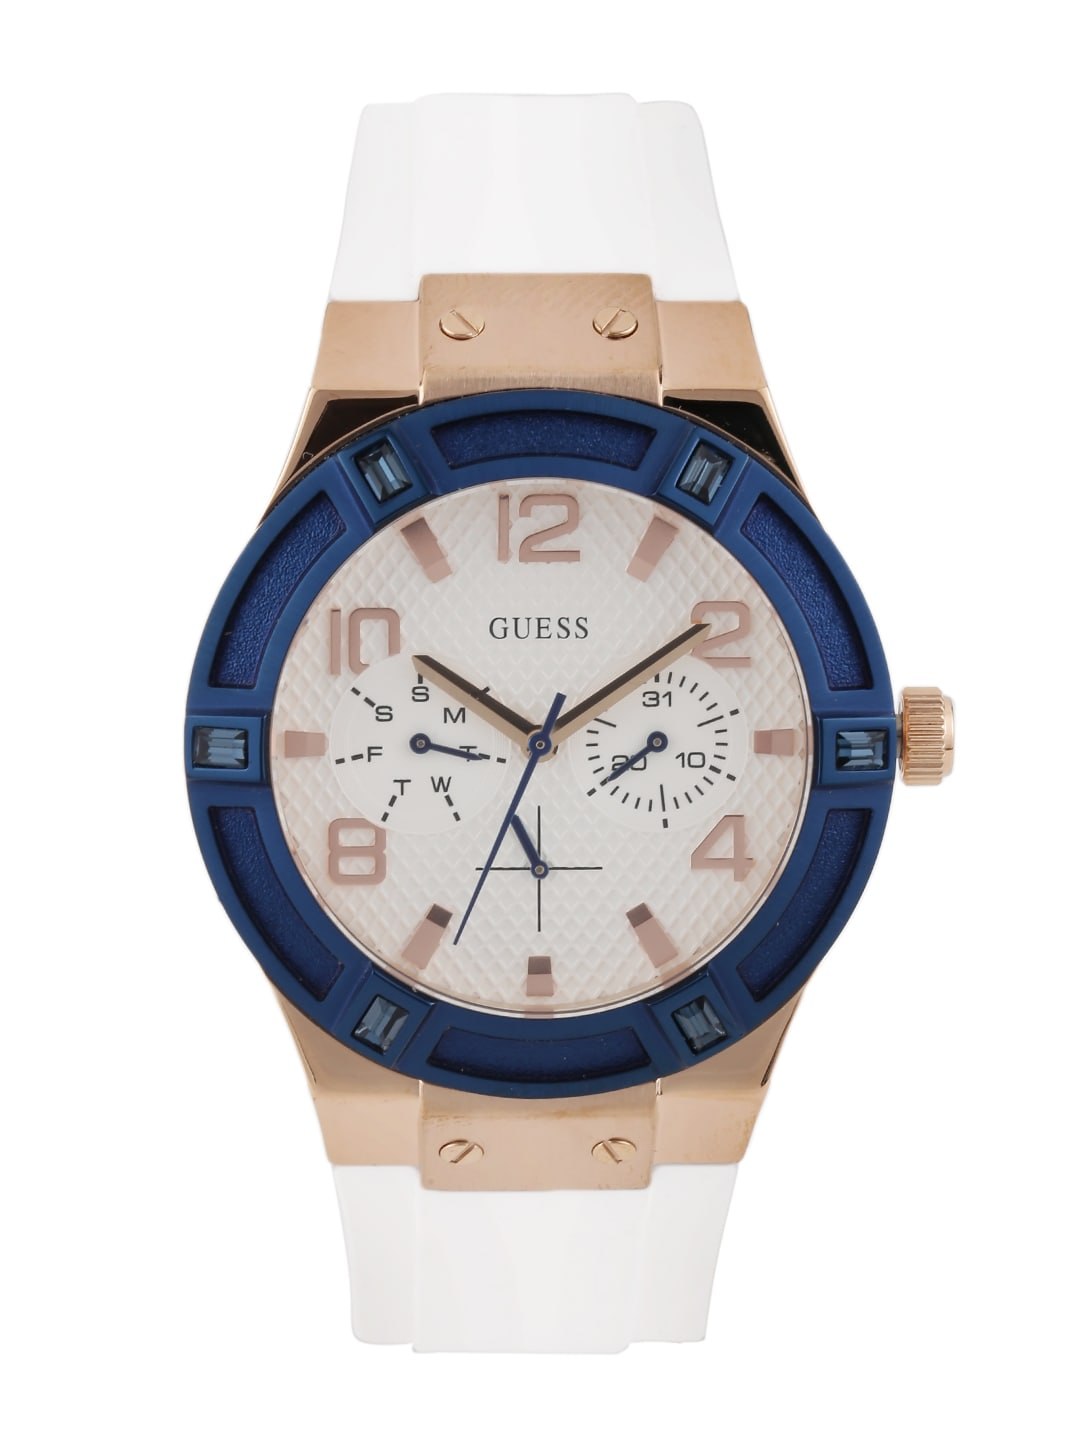 GUESS Women Off-White Textured Dial Watch W0564L1 image